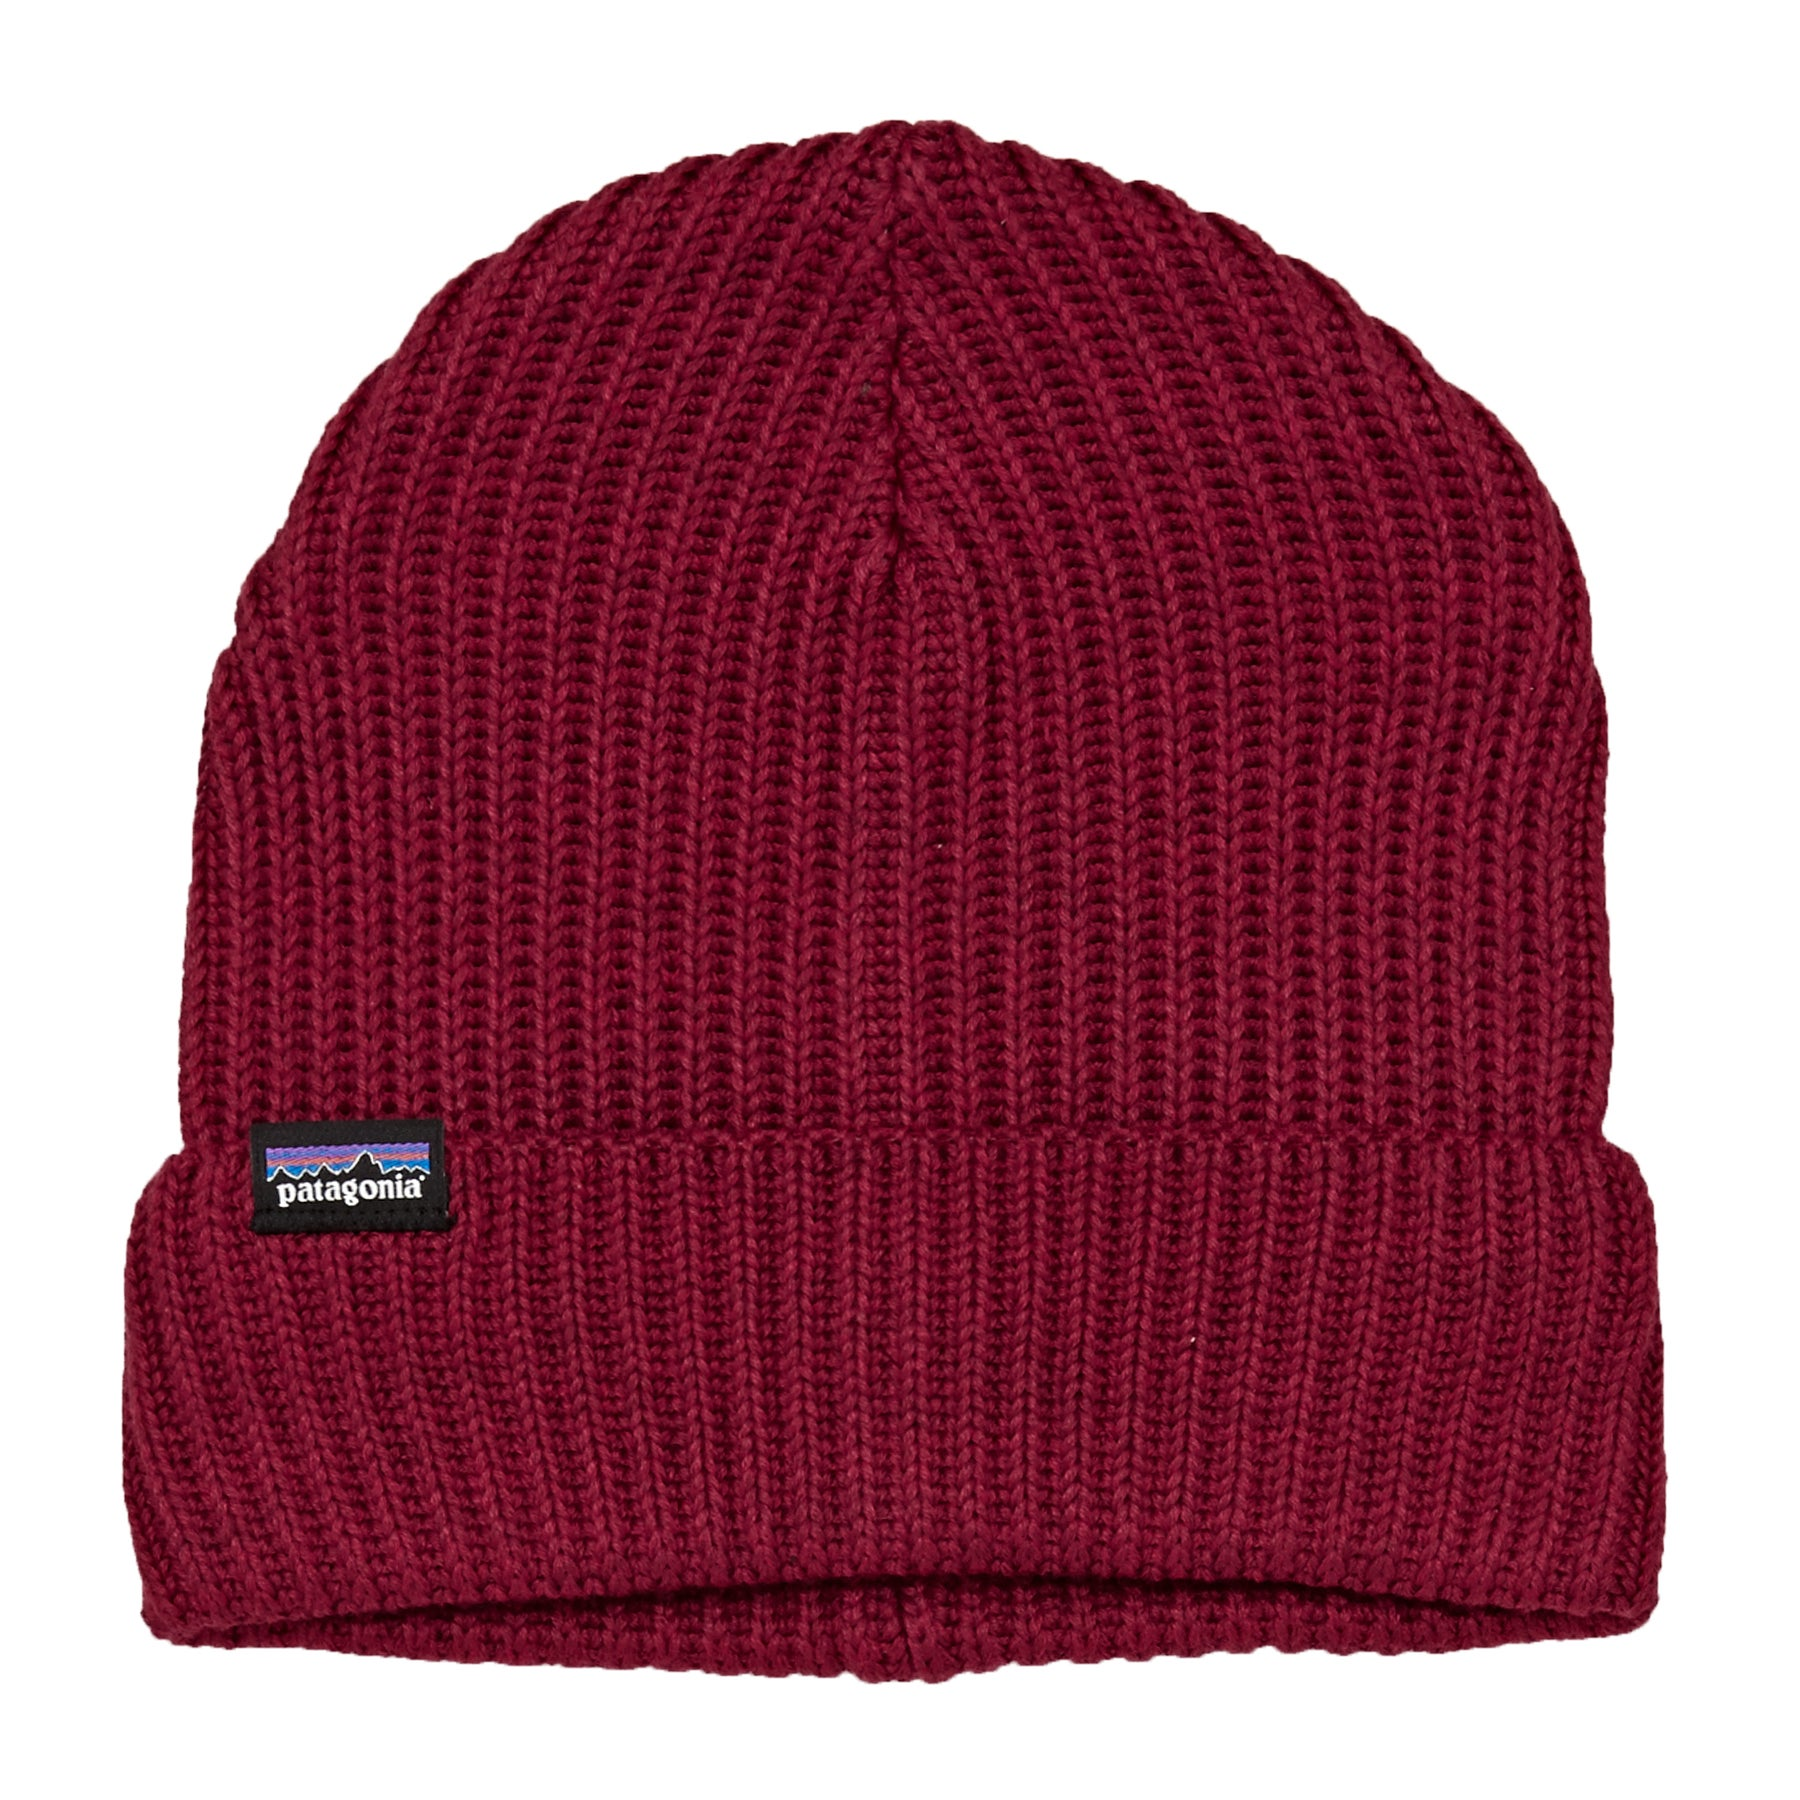 9d838e0a Patagonia Fishermans Rolled Mens Headwear Beanie Hat - Oxide Red One ...